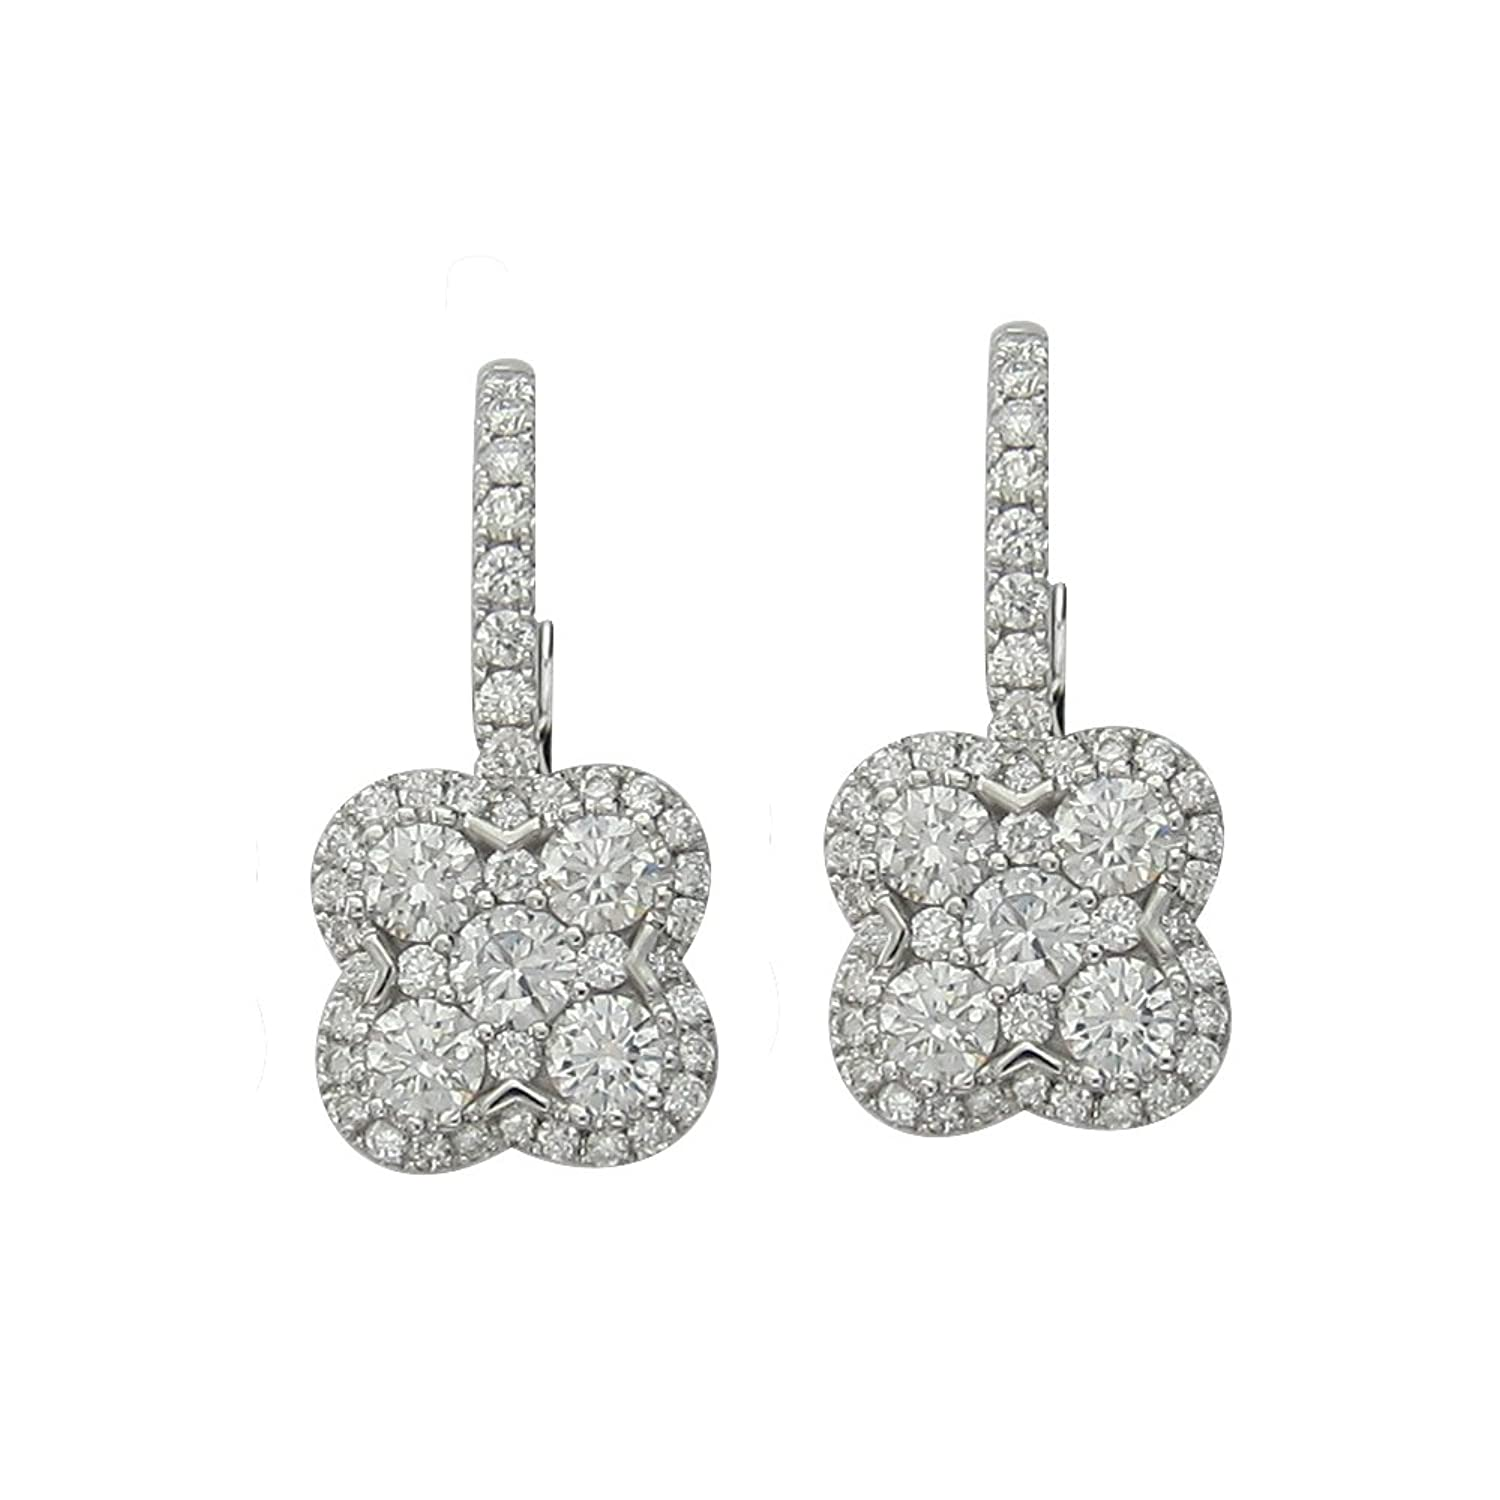 Amazon 2 09 CT F SI1 Cluster Diamond Earrings in 18K White Gold